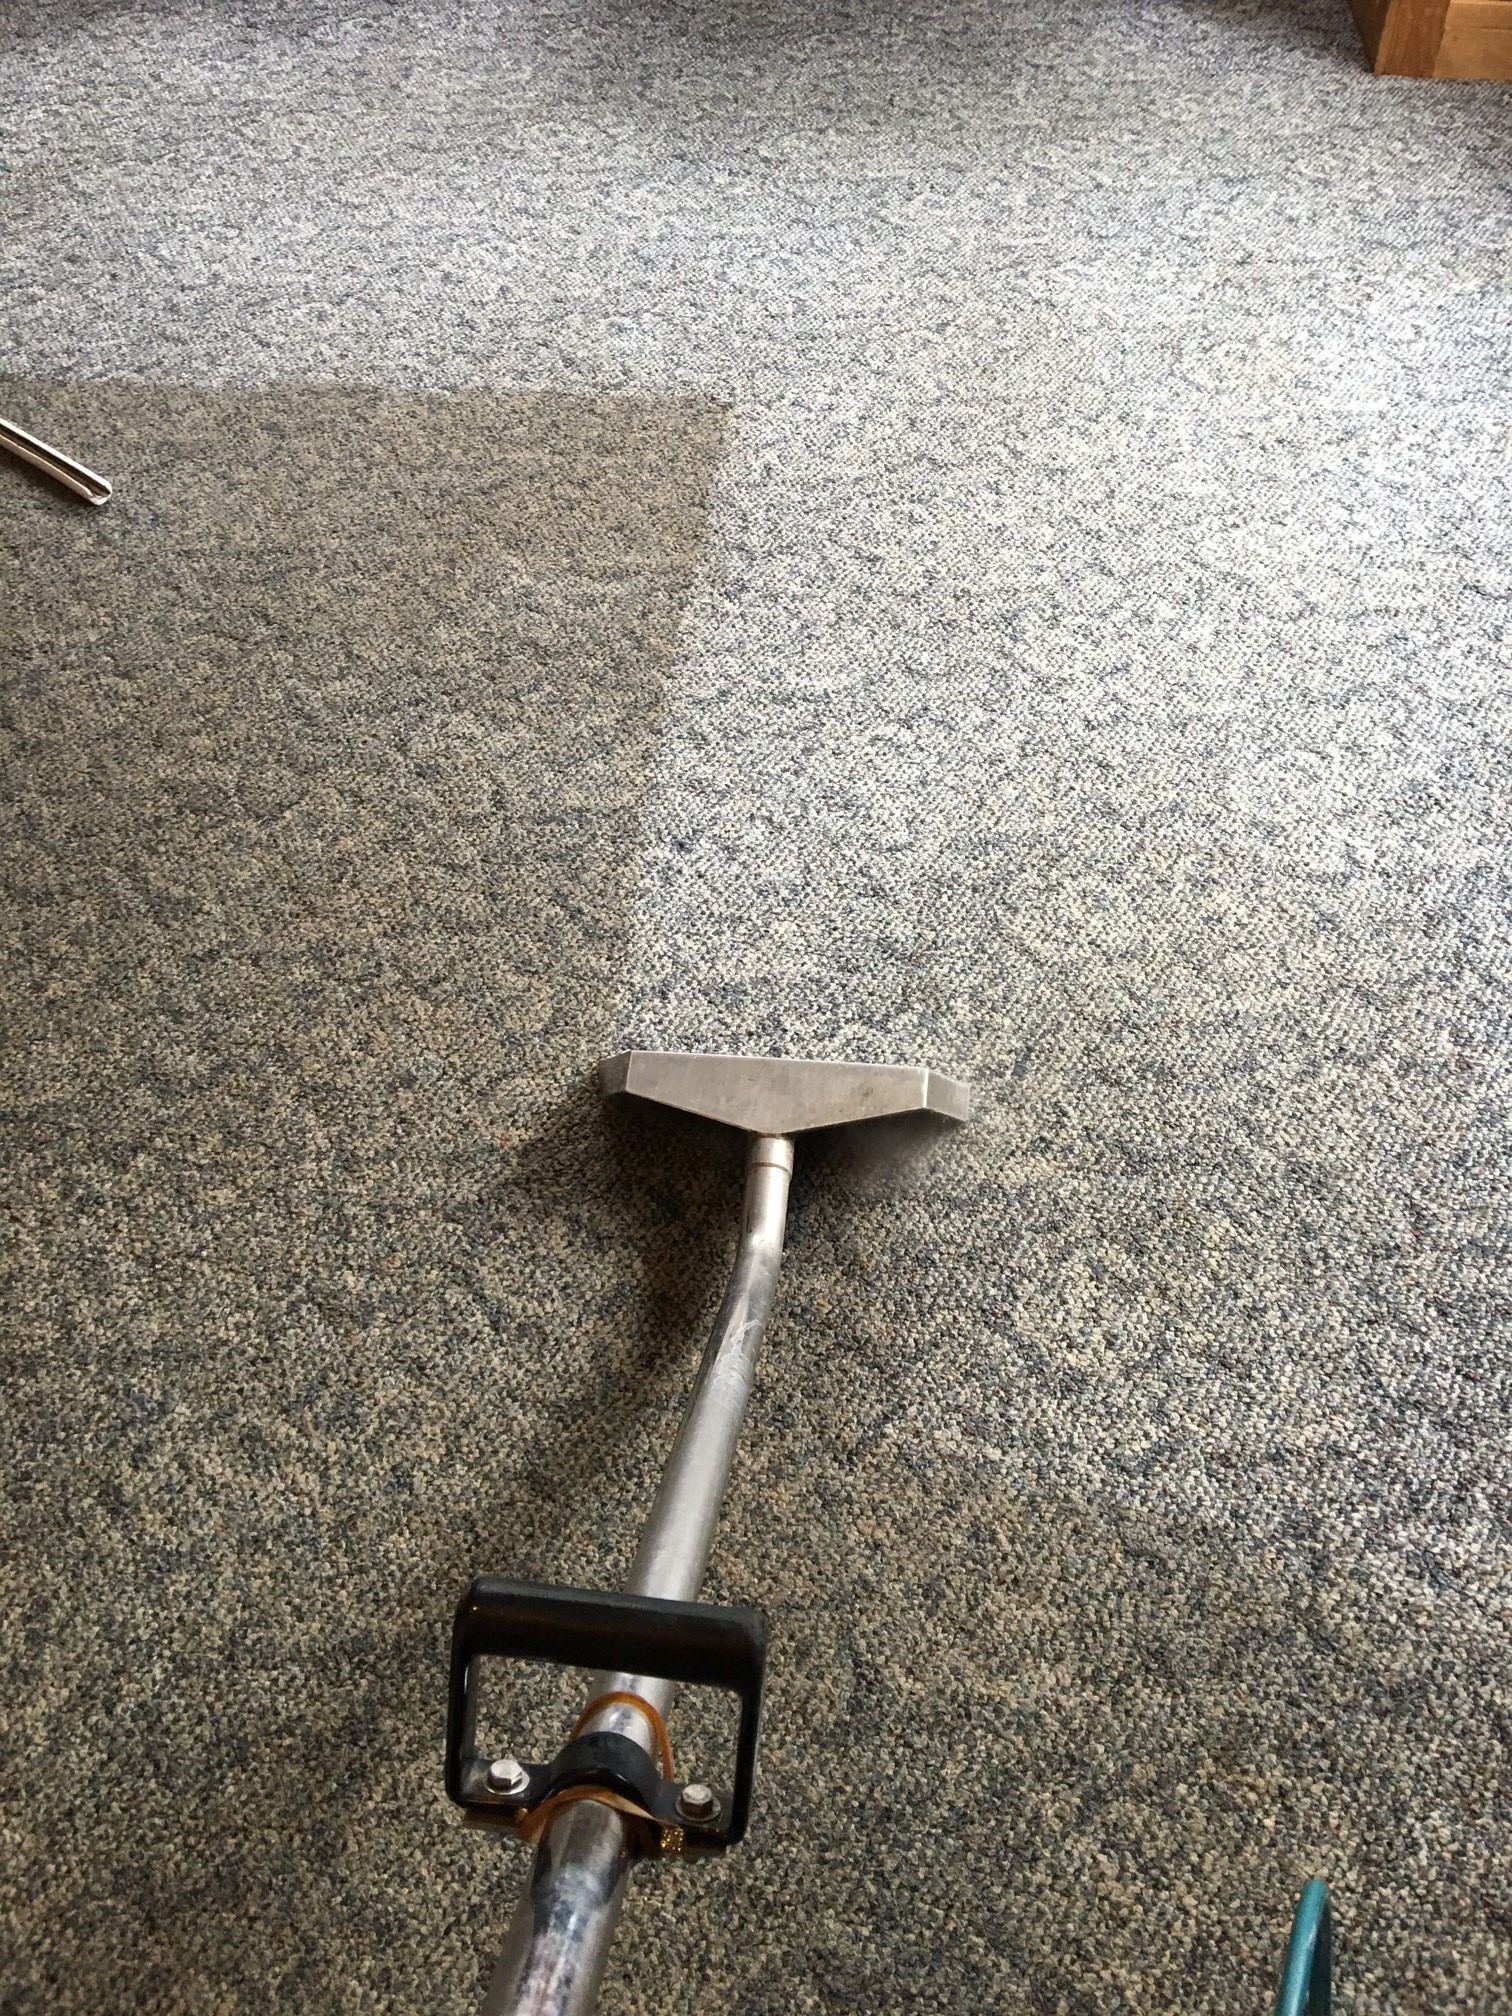 Carpet Cleaning Lowell Boston North Shore Duraclean